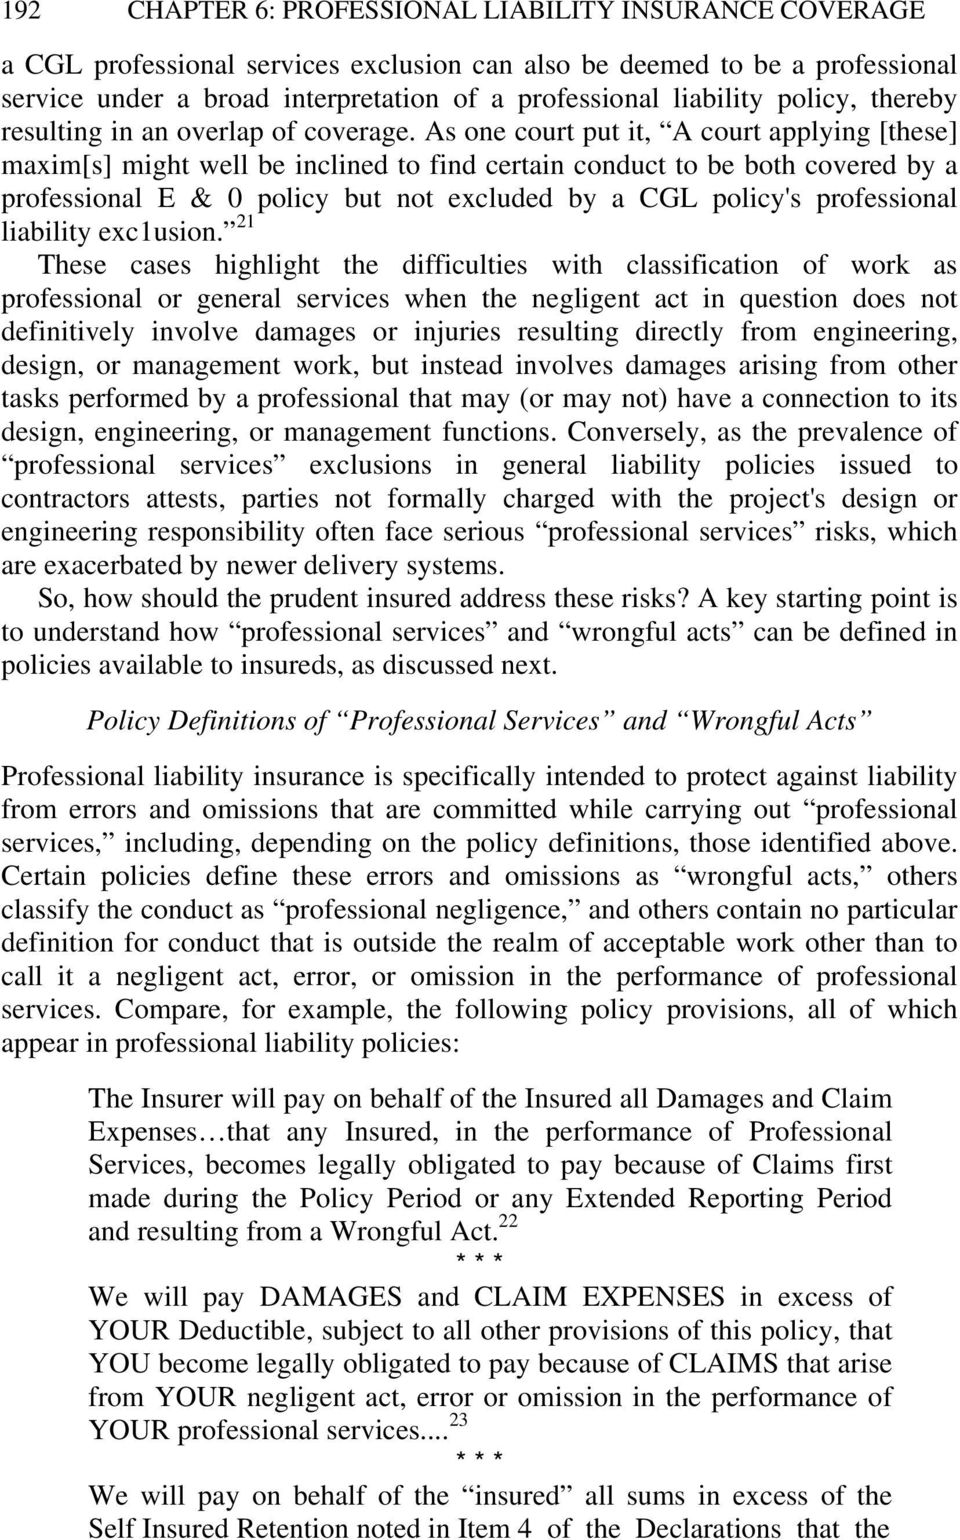 As one court put it, A court applying [these] maxim[s] might well be inclined to find certain conduct to be both covered by a professional E & 0 policy but not excluded by a CGL policy's professional